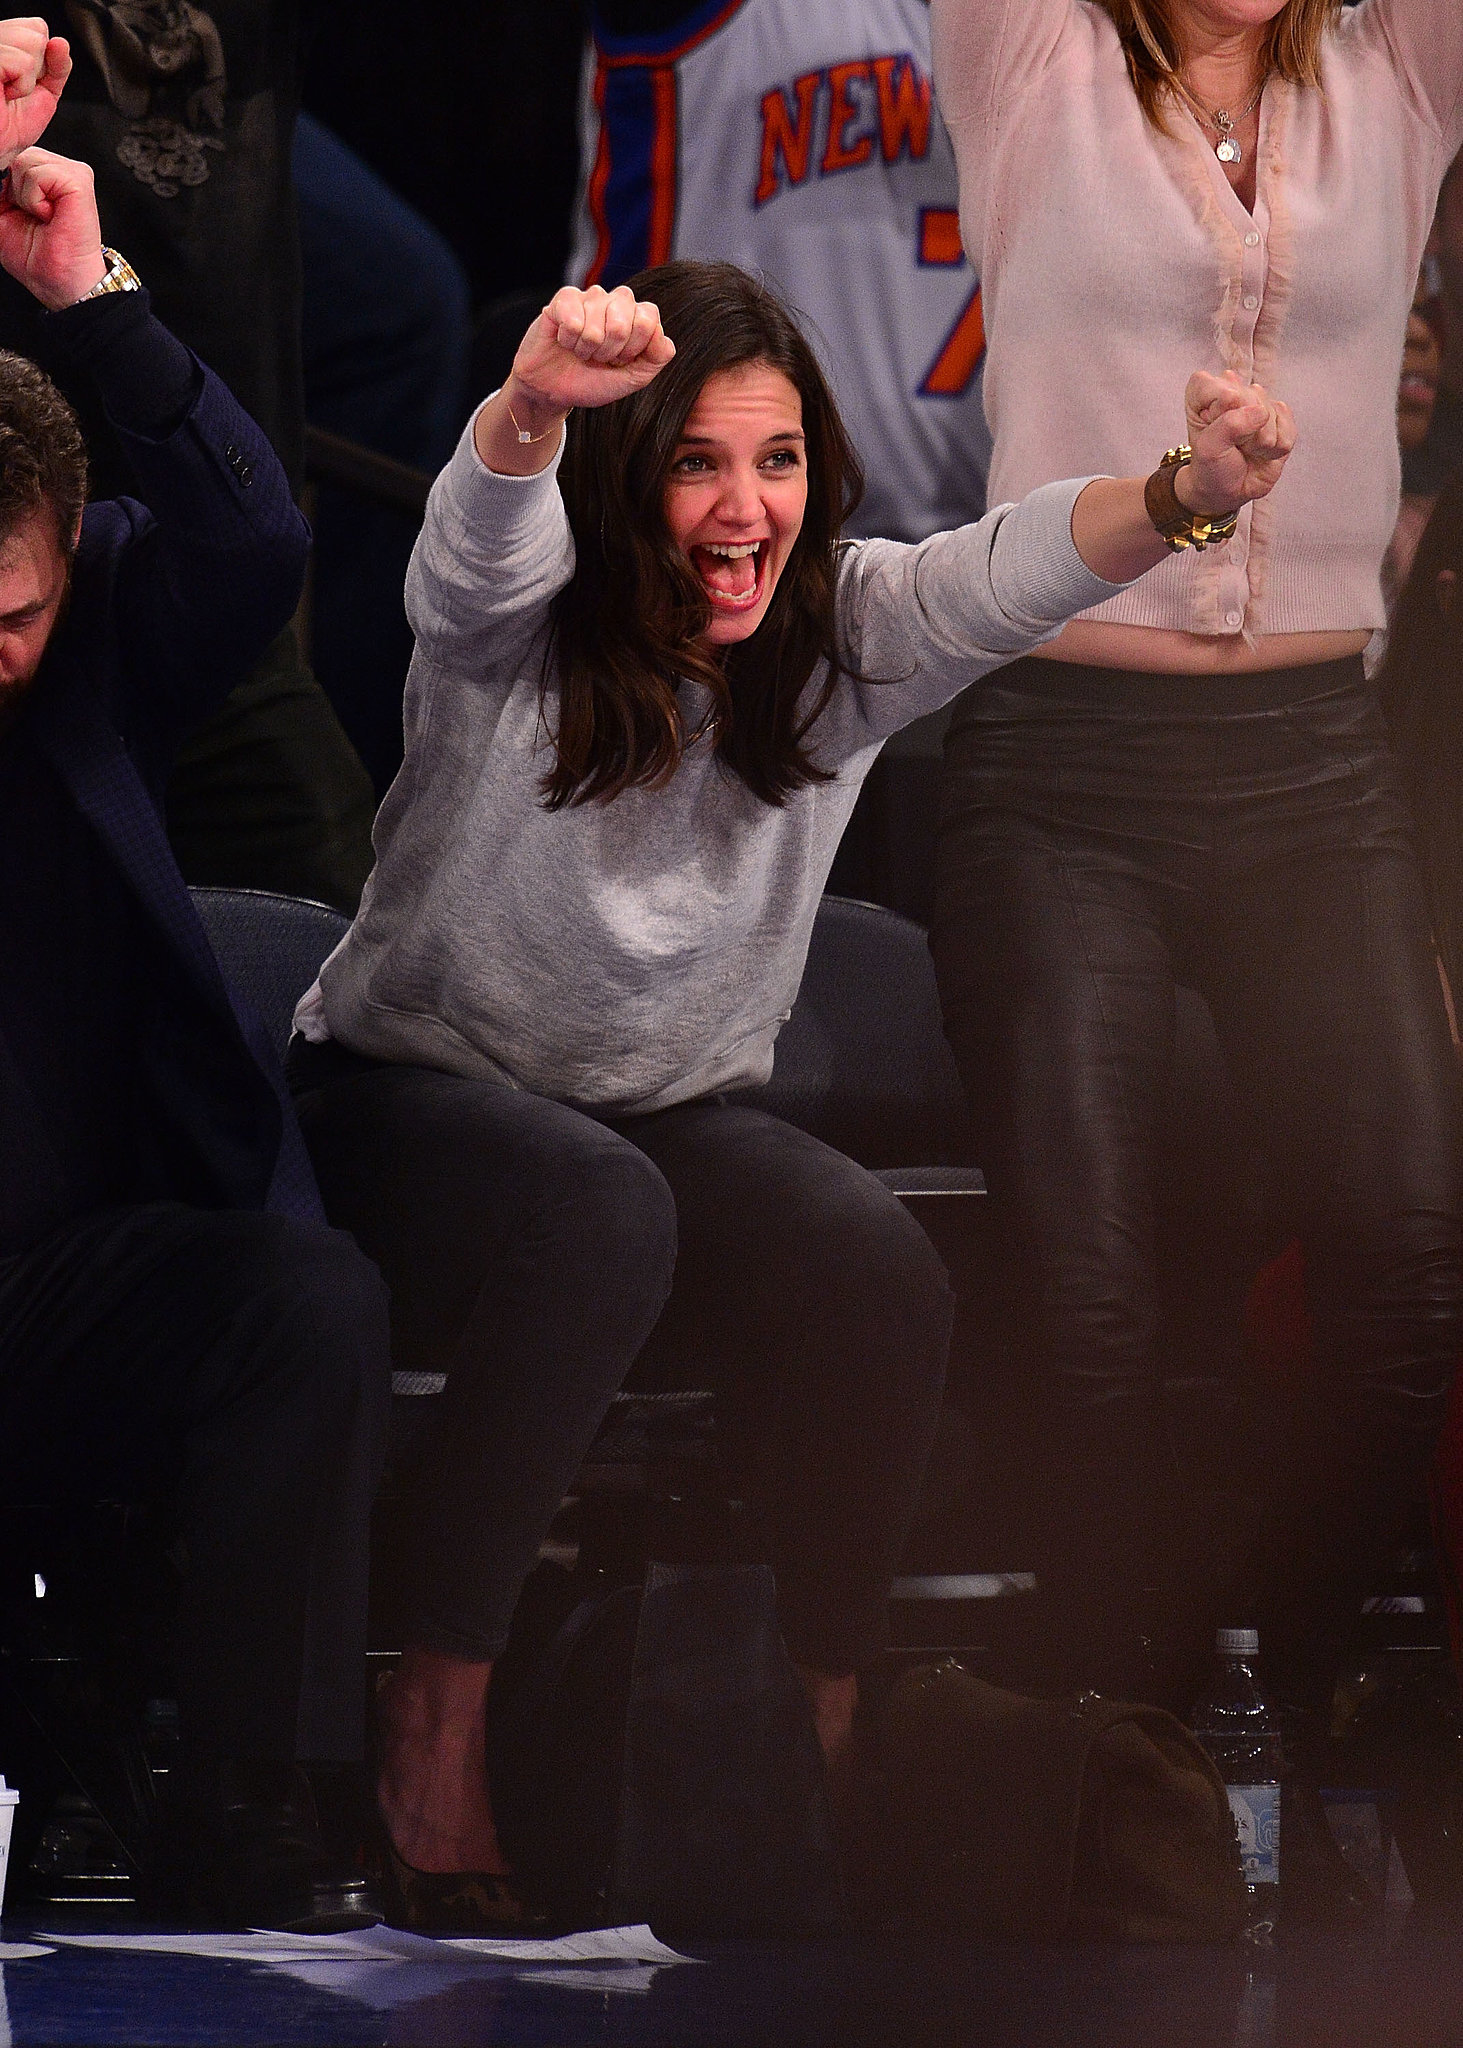 Katie Holmes couldn't contain her excitement after a big moment in the Miami Heat vs. New York Knicks game in January.